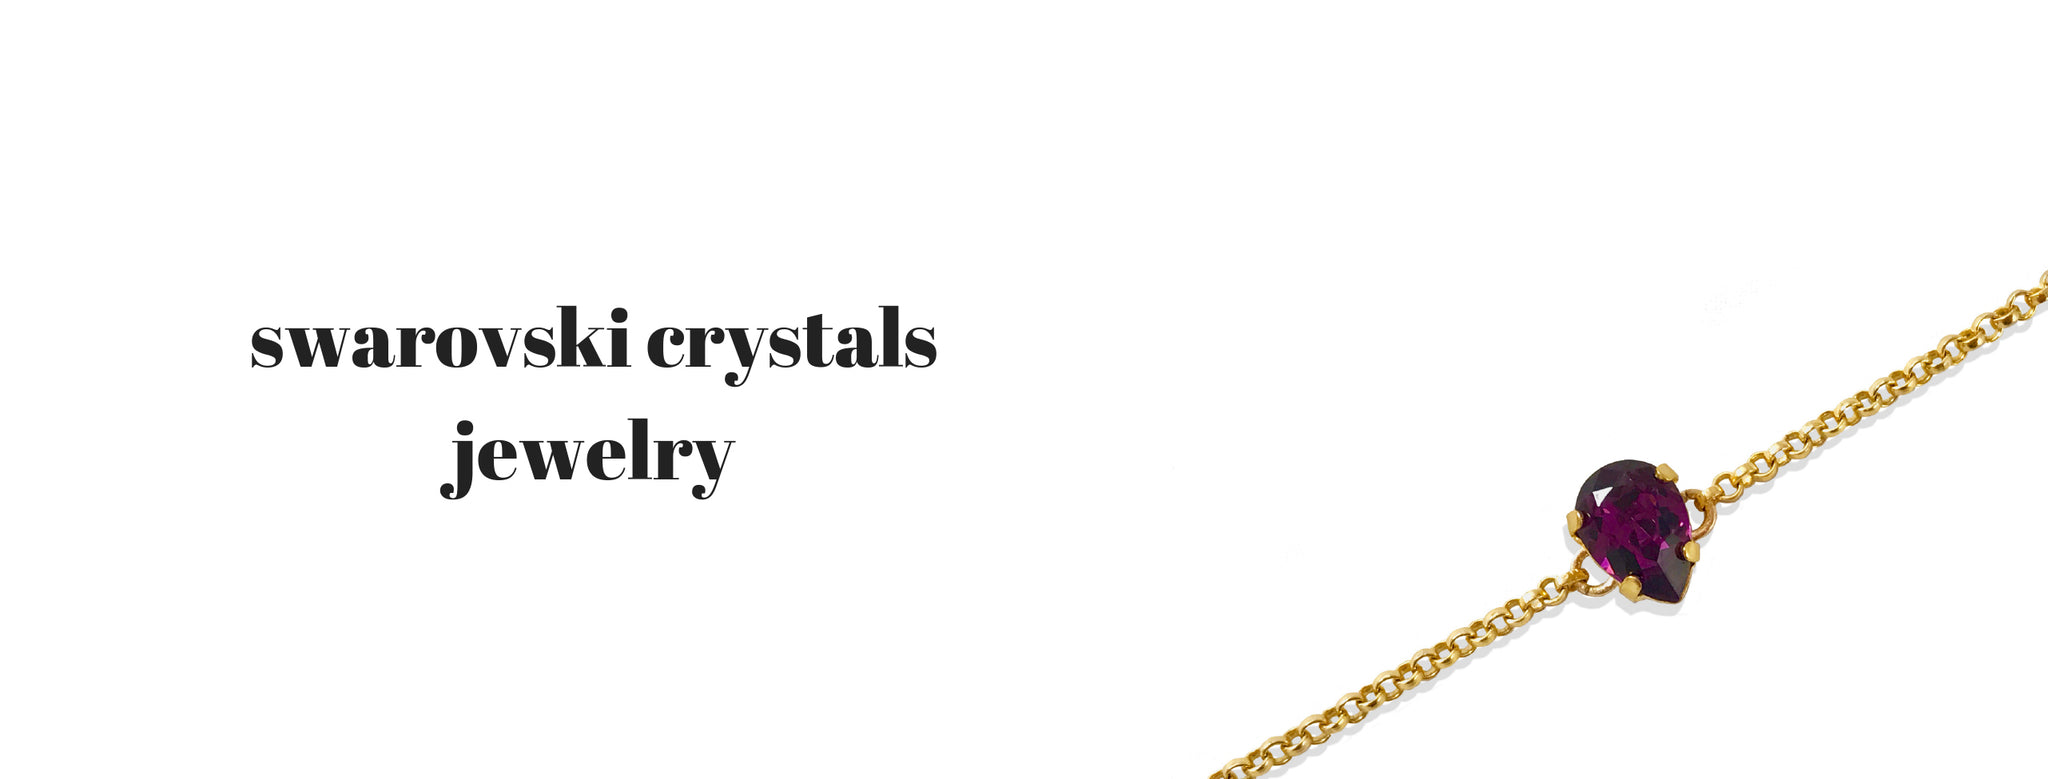 Cissy's Swarovski Crystals Jewelry, Demi-fine Jewelry, International Shipping